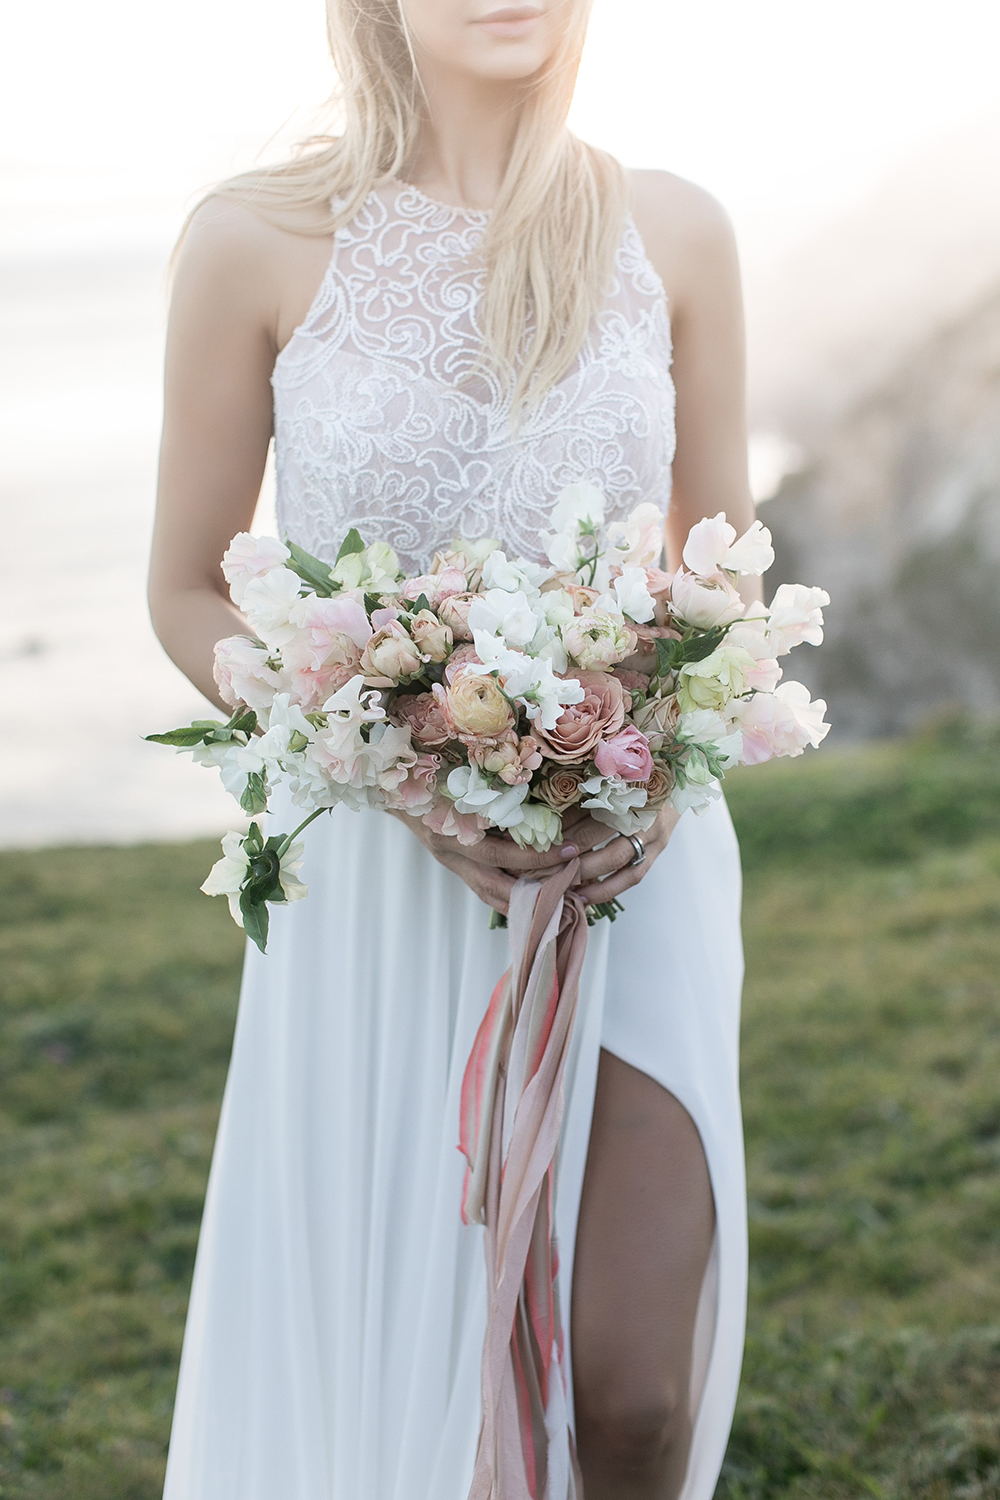 dusty bouquets - photo by Tyler Rye Photography http://ruffledblog.com/romantic-coastal-california-wedding-inspiration